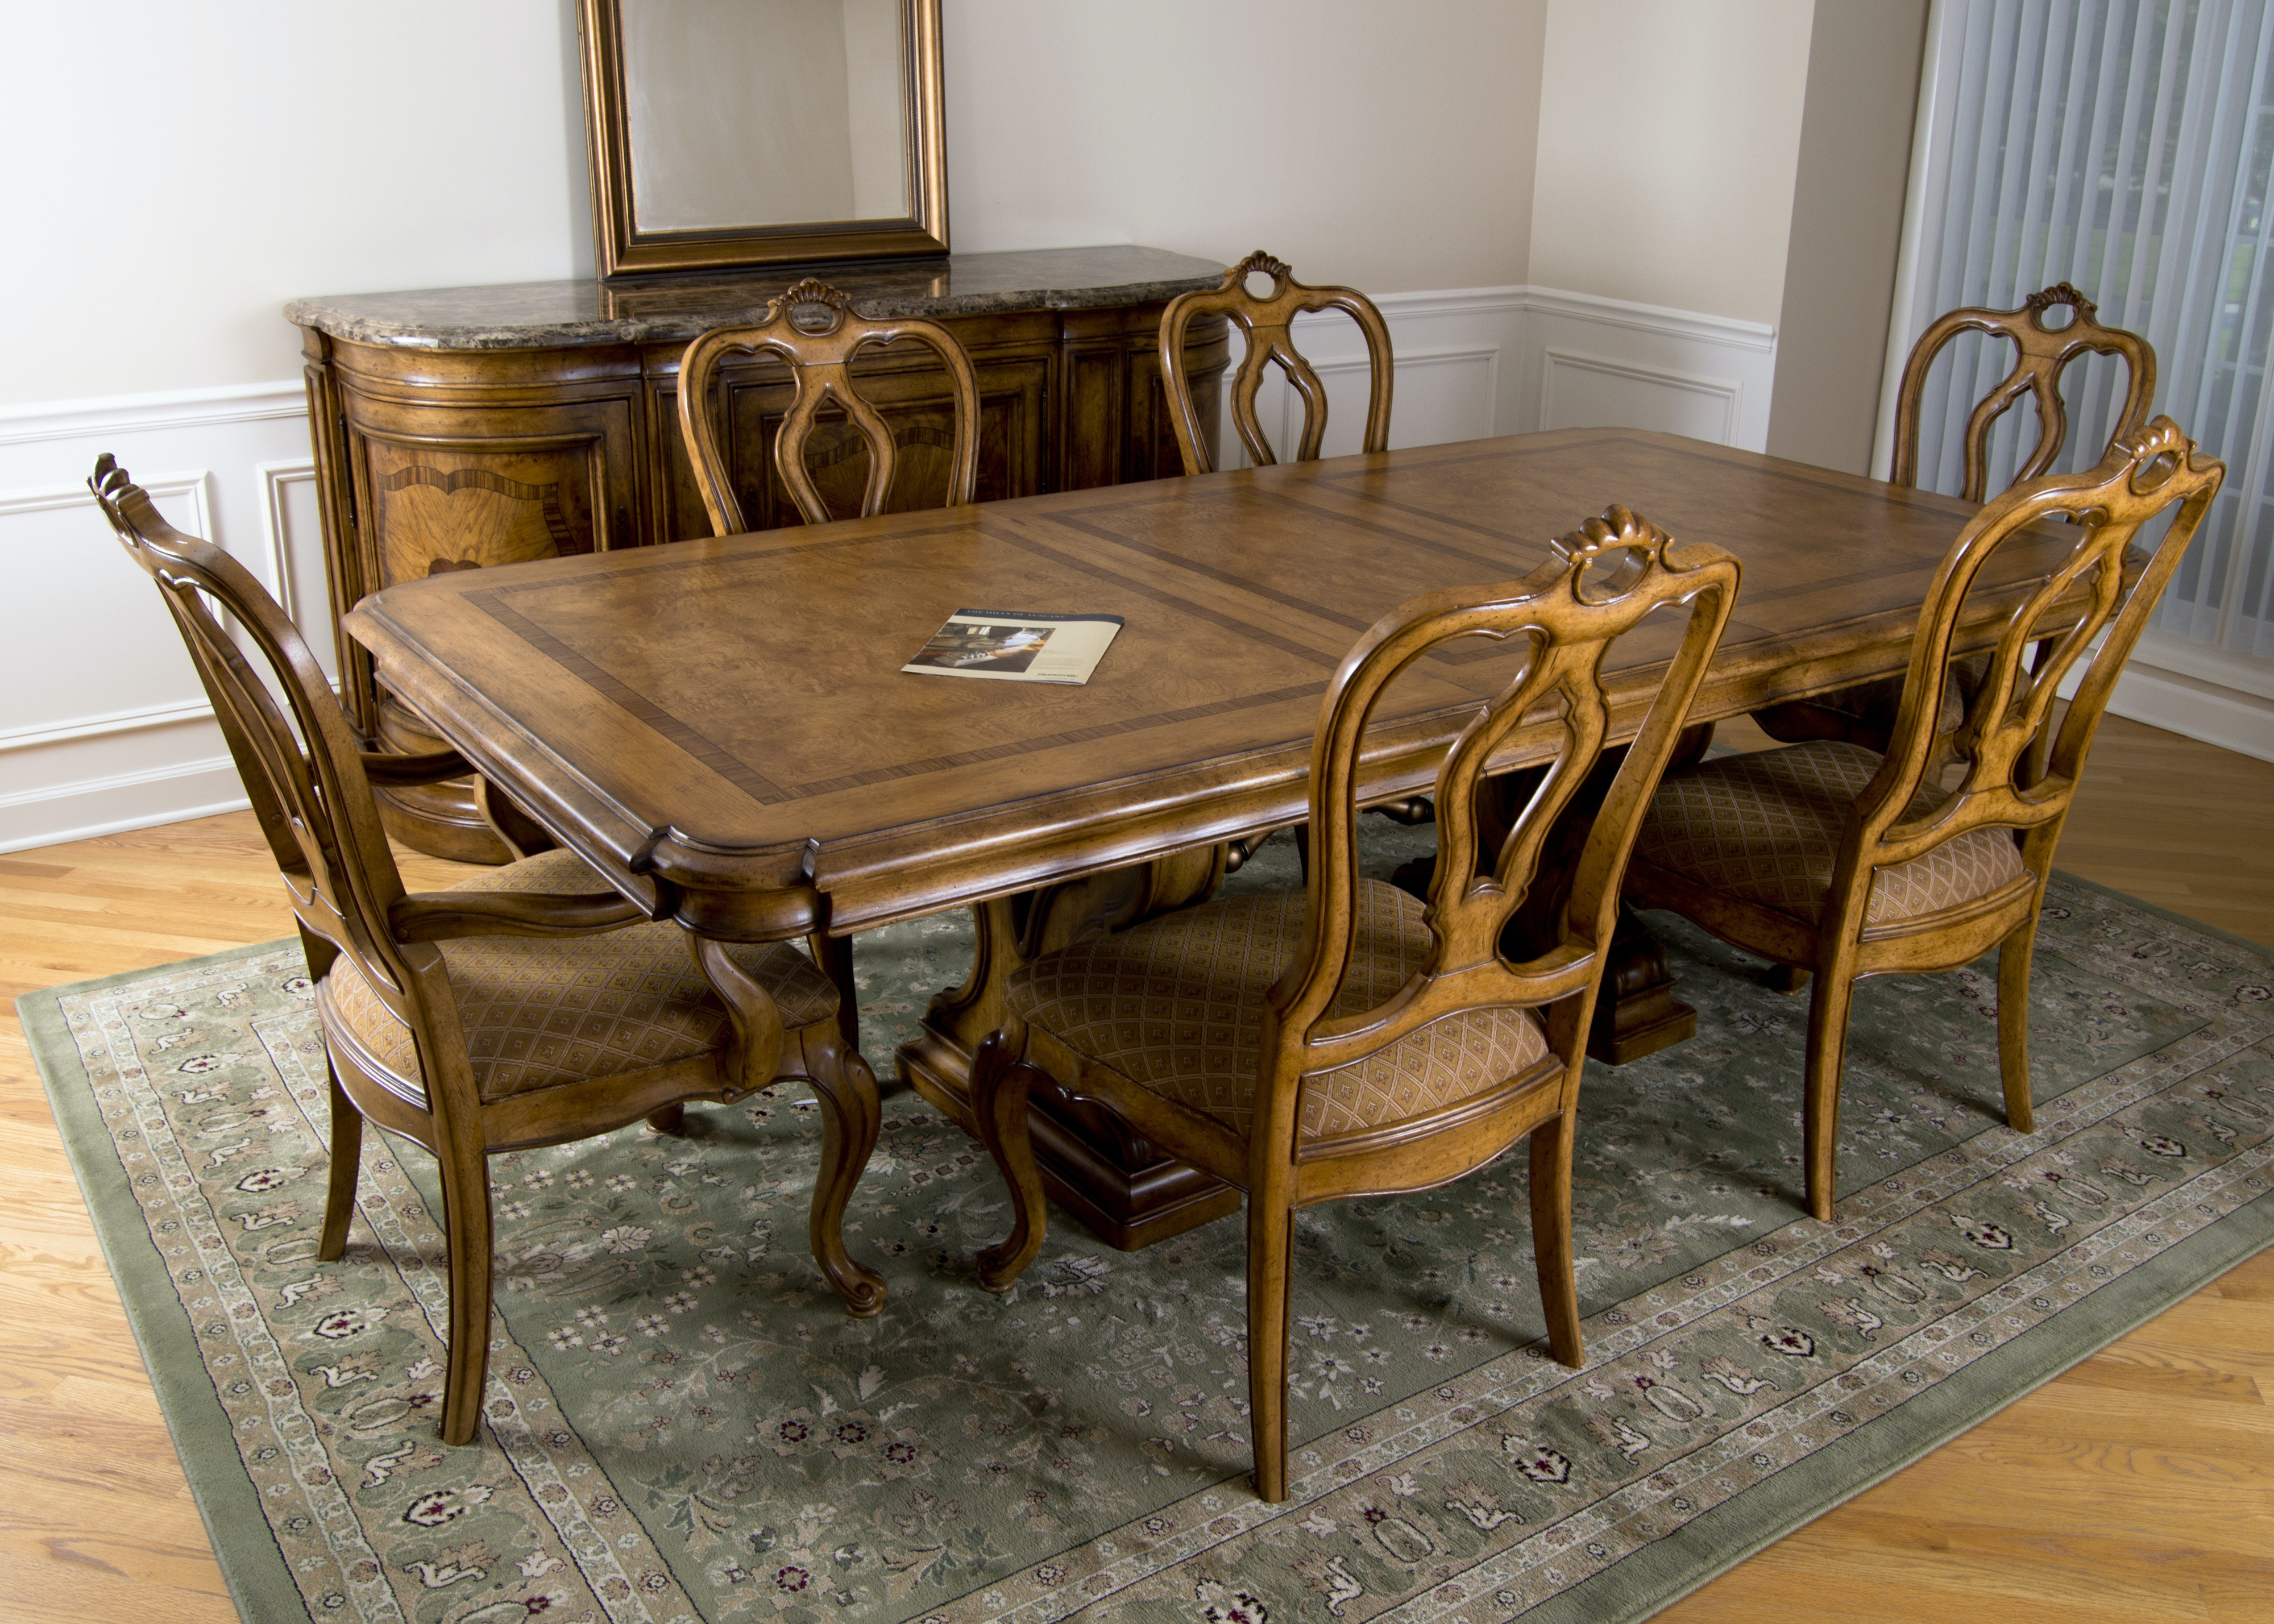 Thomasville Bibbiano Trestle Dining Table and Six Chairs  : untitled 244jpgixlibrb 11 from www.ebth.com size 880 x 906 jpeg 203kB